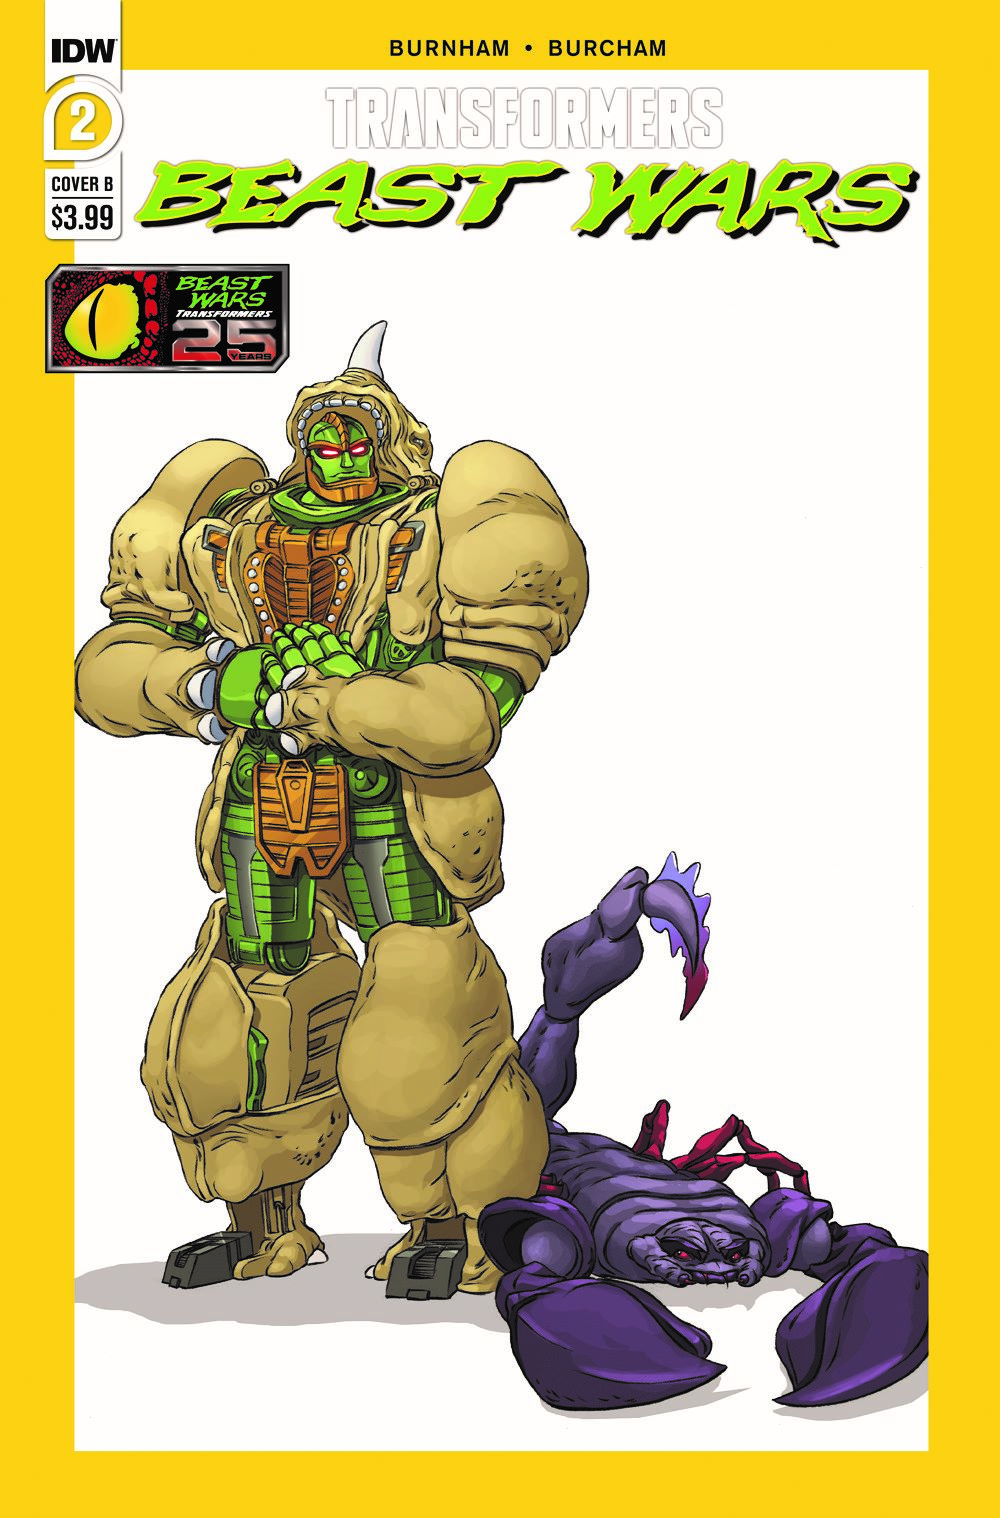 TFBW-Cover-B ComicList Previews: TRANSFORMERS BEAST WARS #2